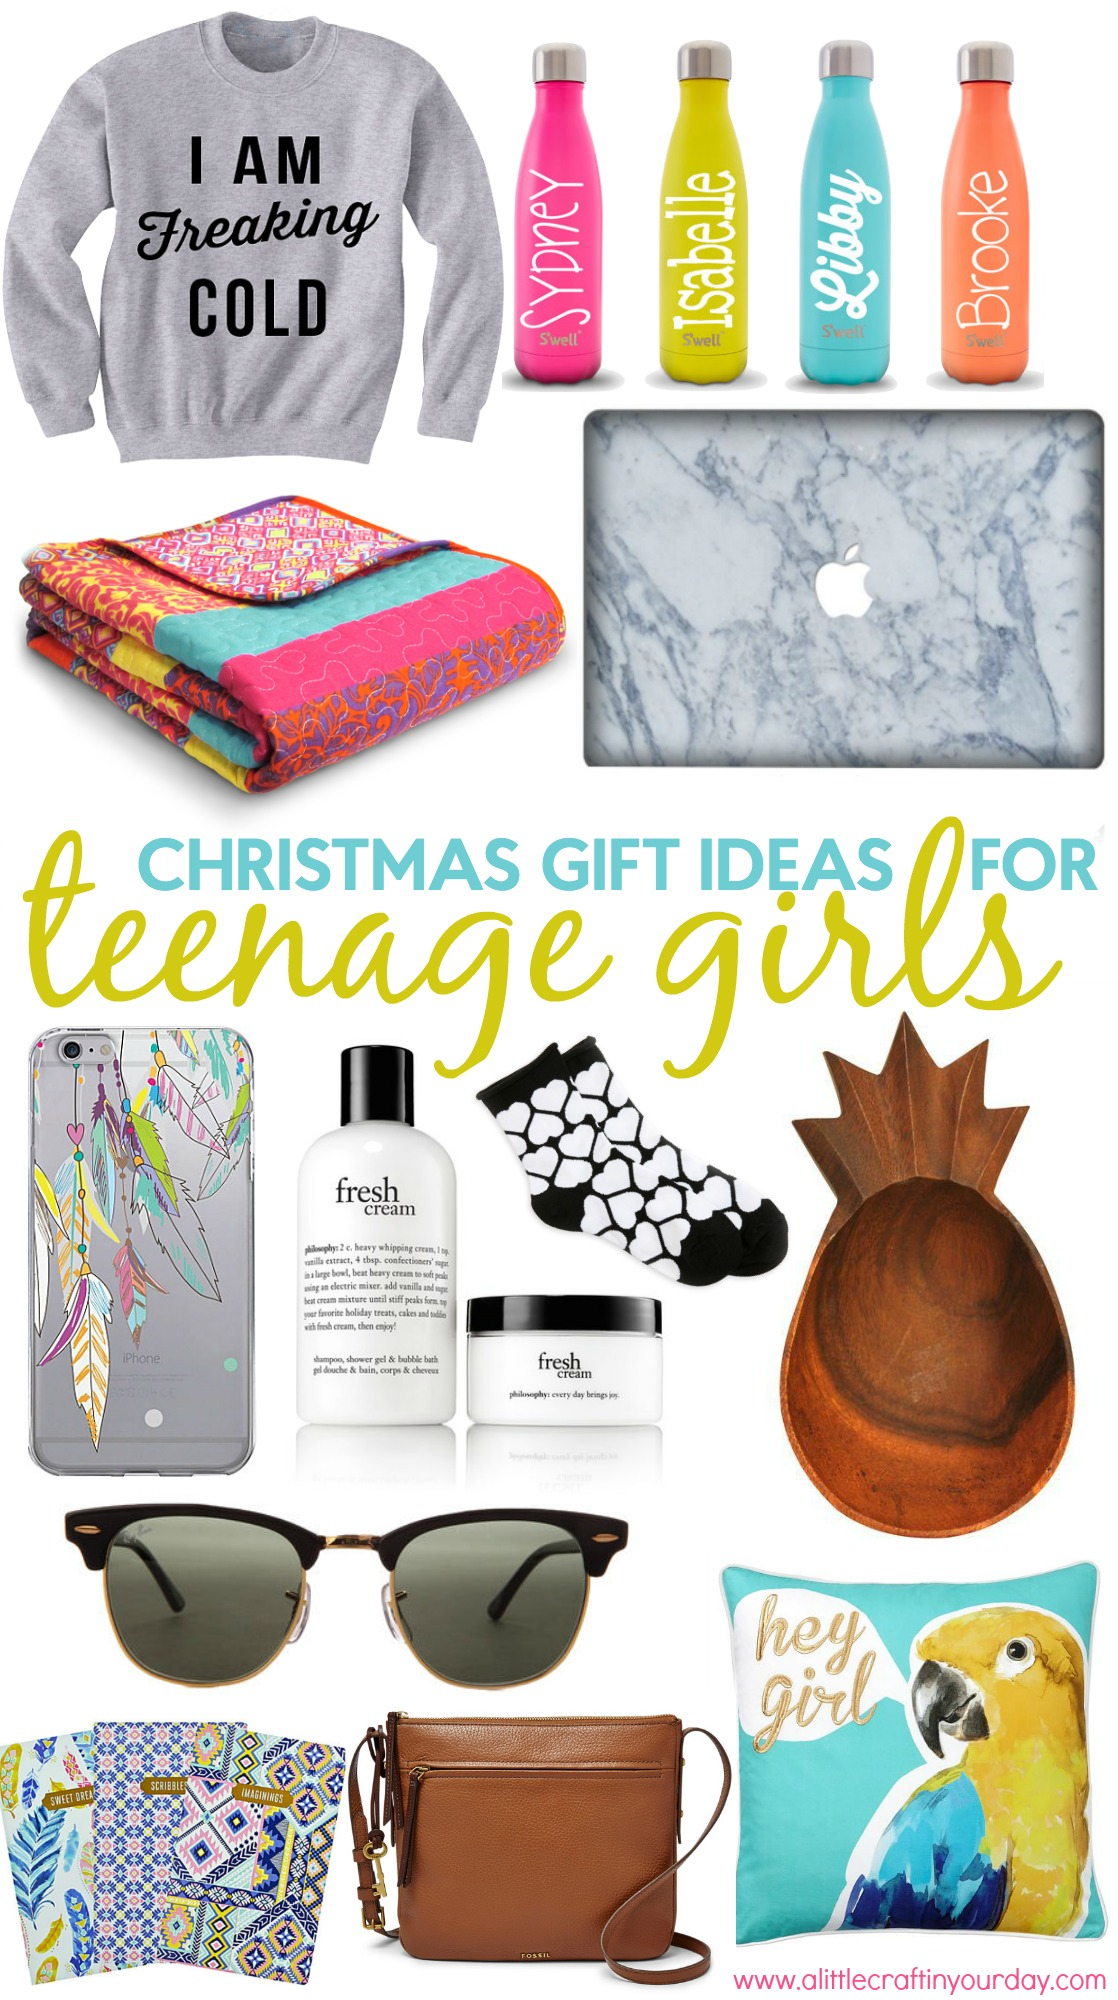 Gift ideas for teens that inspire creativity, such as drawing supplies are a great way for them to be creative as well as make creative things that they can use. You can also get creative and make a gift yourself or add a simple, handmade card, which will show /5().